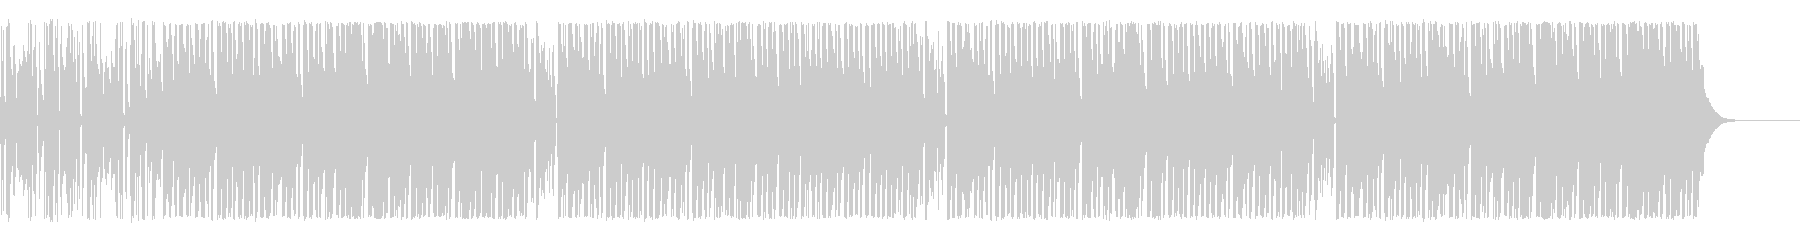 Happy and cheerful's unreproduced waveform